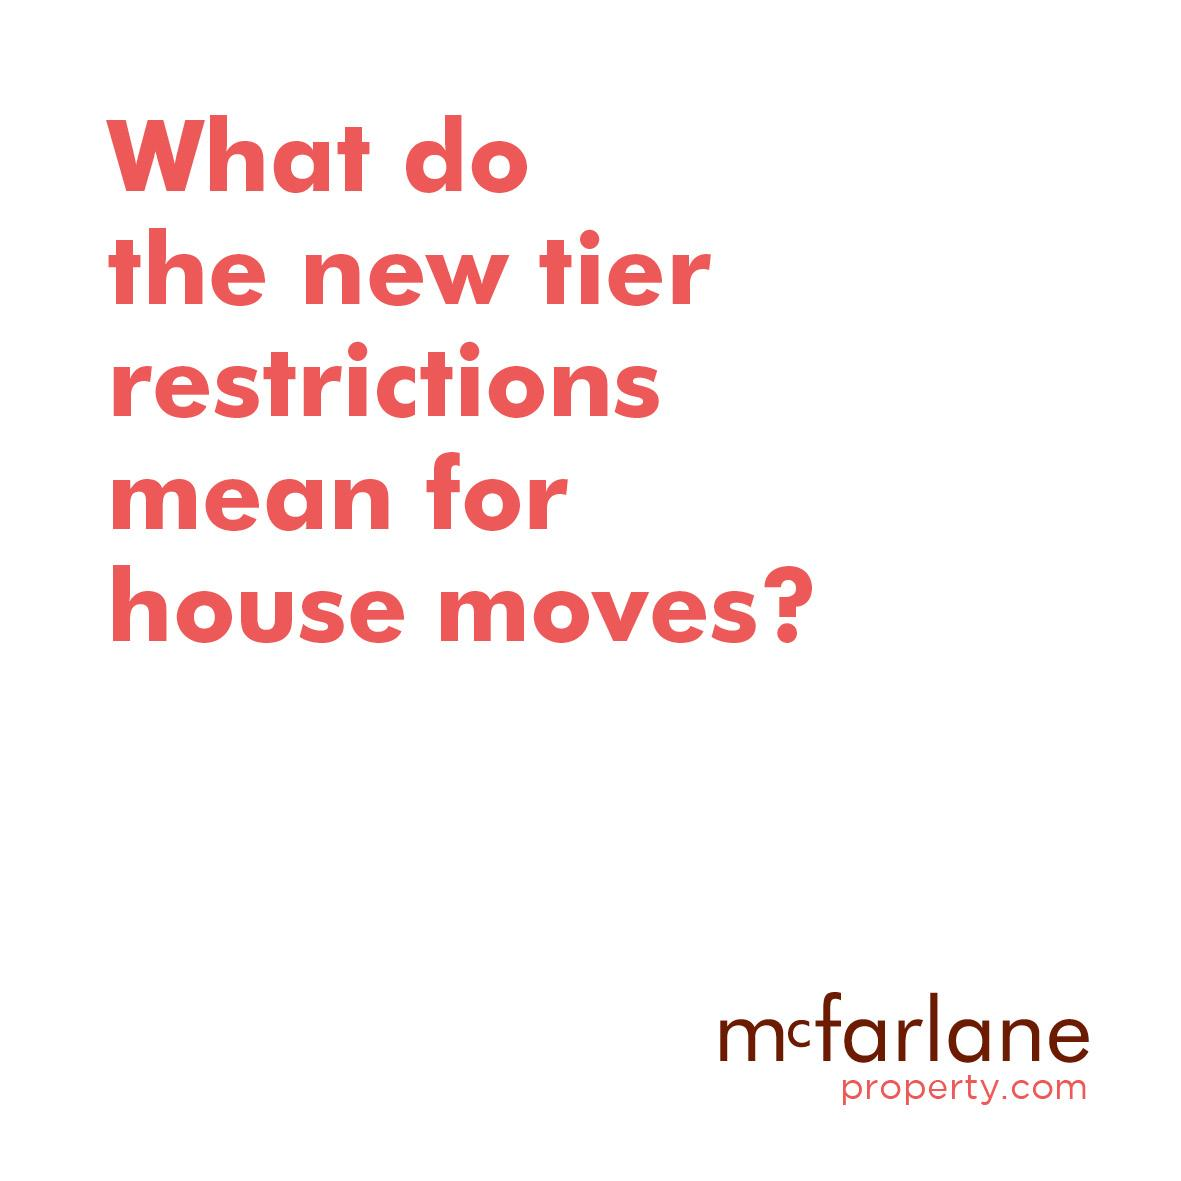 What do the new tier restrictions mean for house moves?